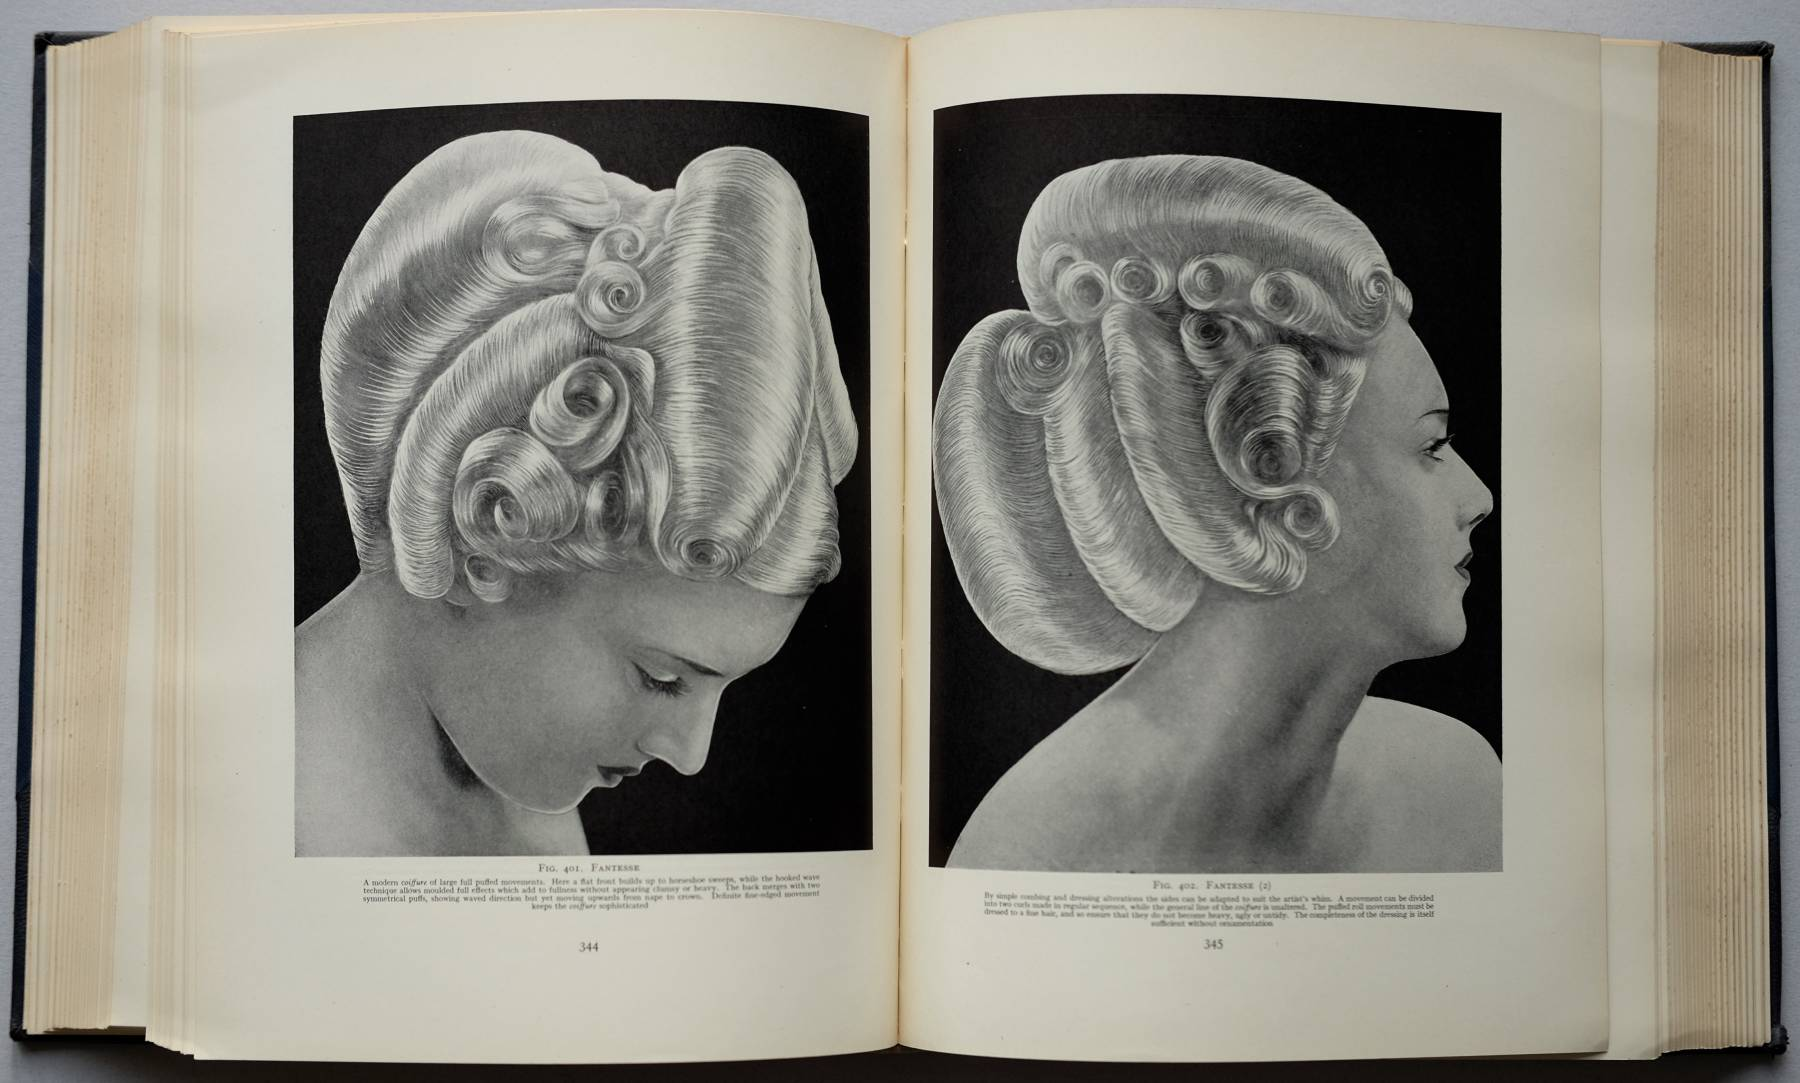 The Art and Craft of Hairdressing